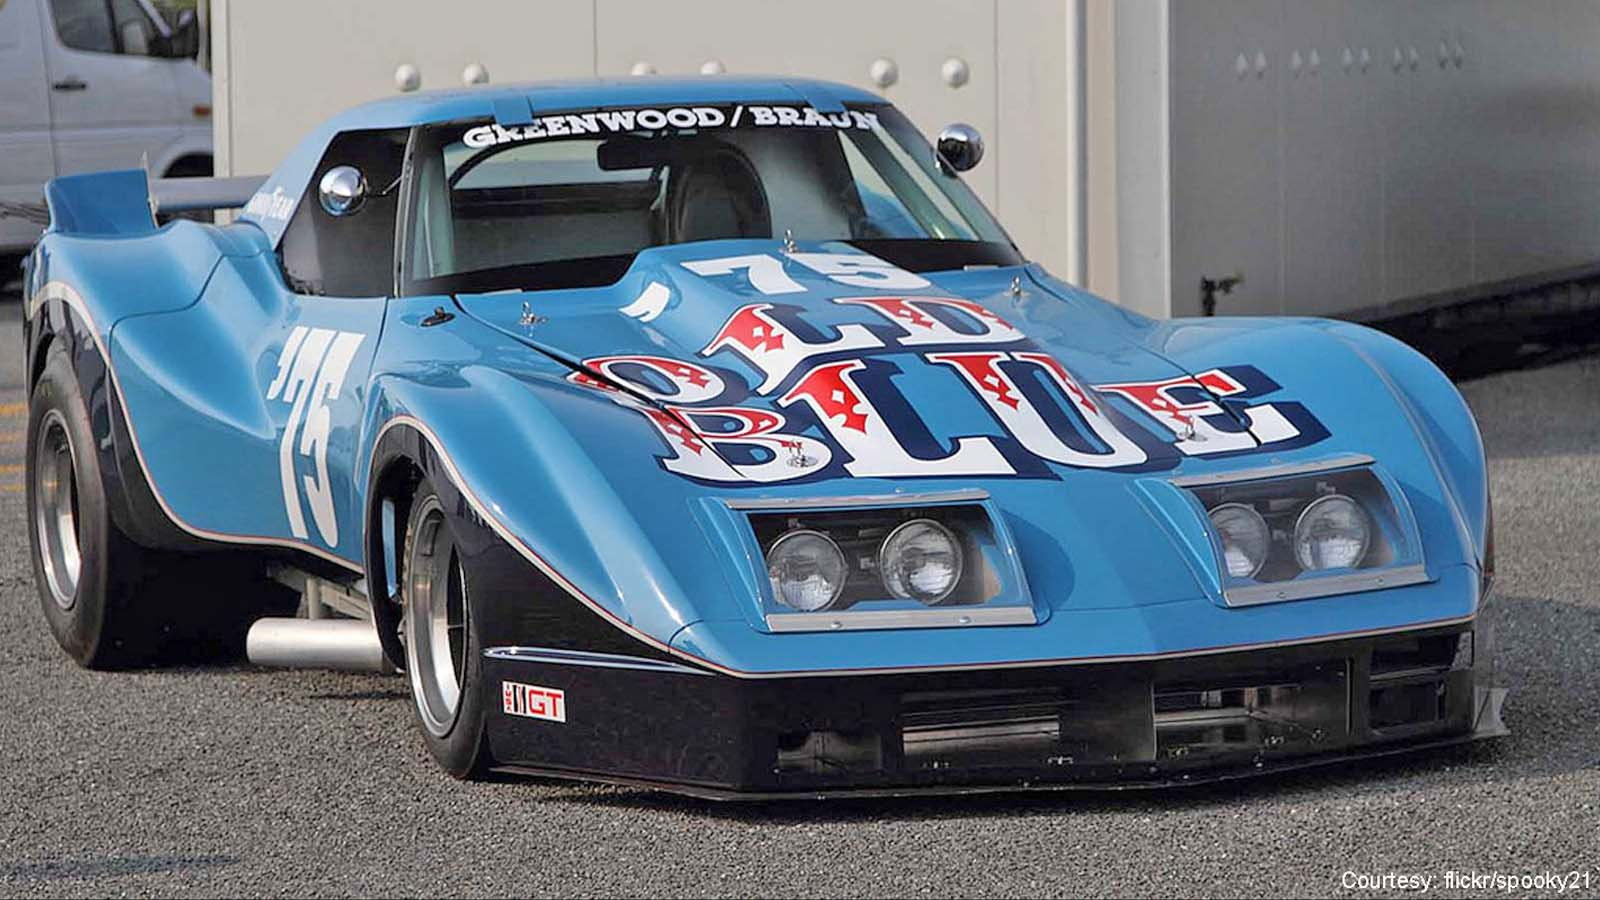 The Greenwood Corvette Story - The Race Cars